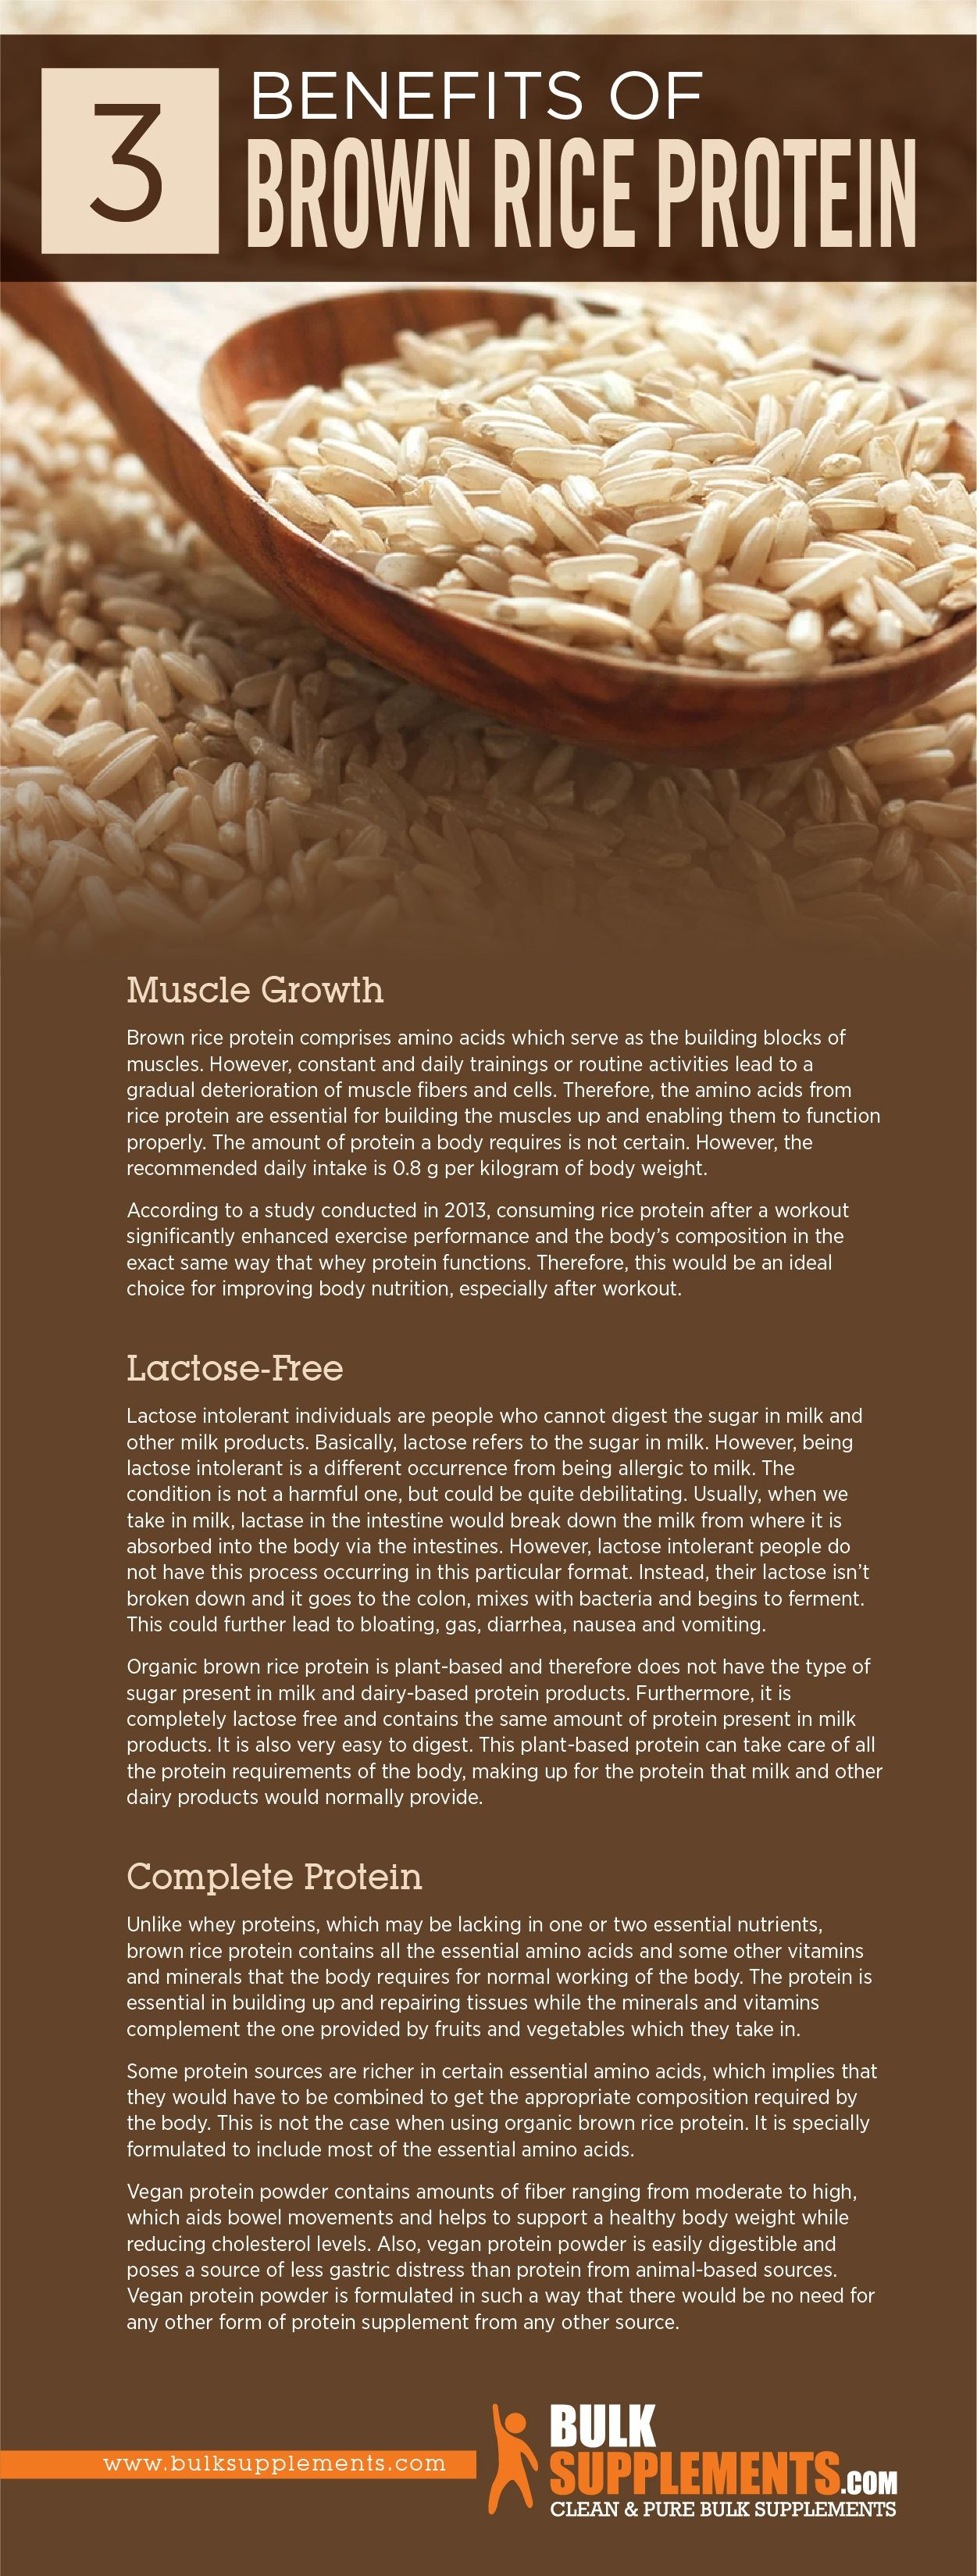 Brown Rice Protein: Benefits, Side Effects & Dosage ...